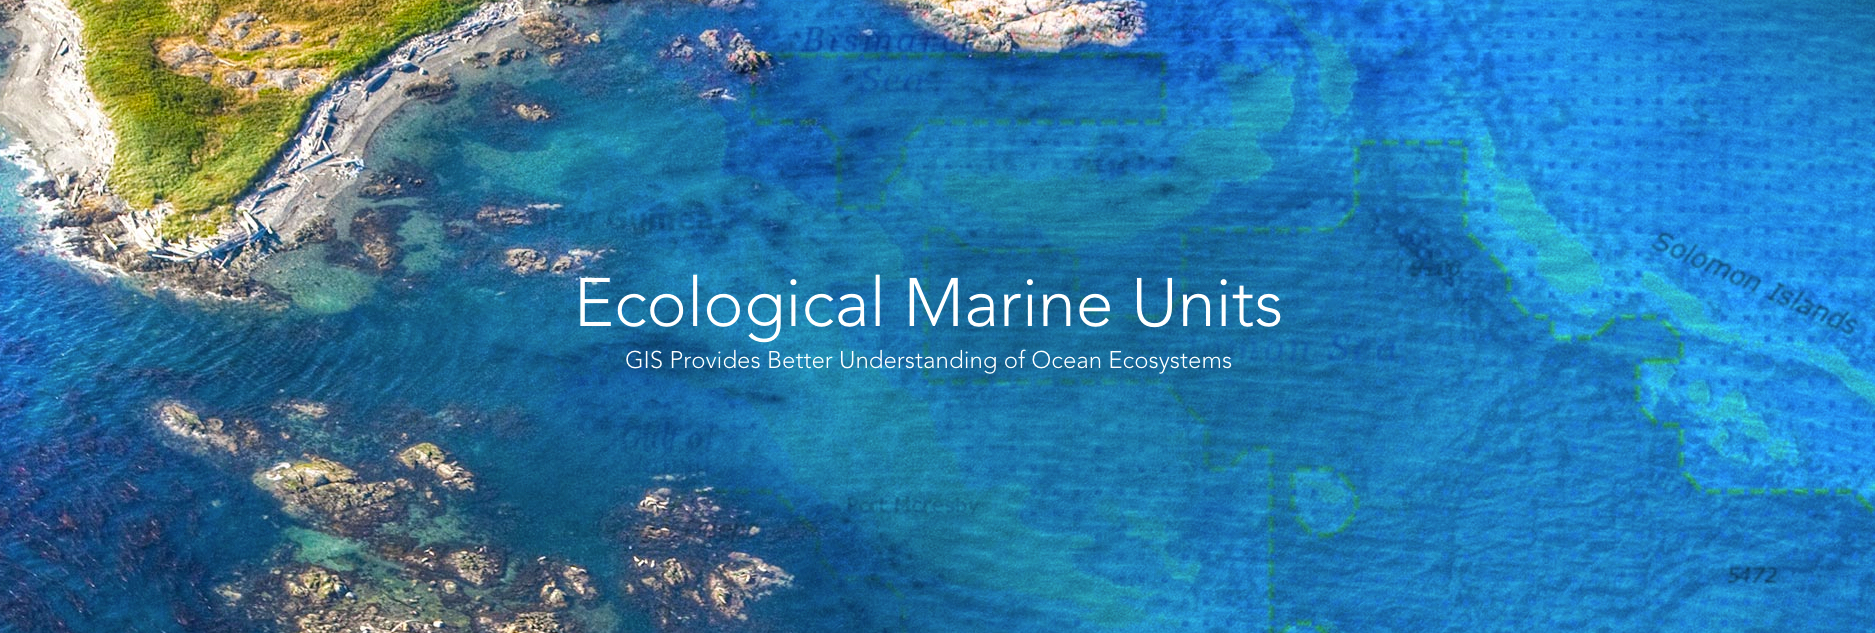 Esri, the global leader in spatial analytics, today announced that its innovative Ecological Marine Units (EMU) app is now available for mobile devices. (Graphic: Business Wire)